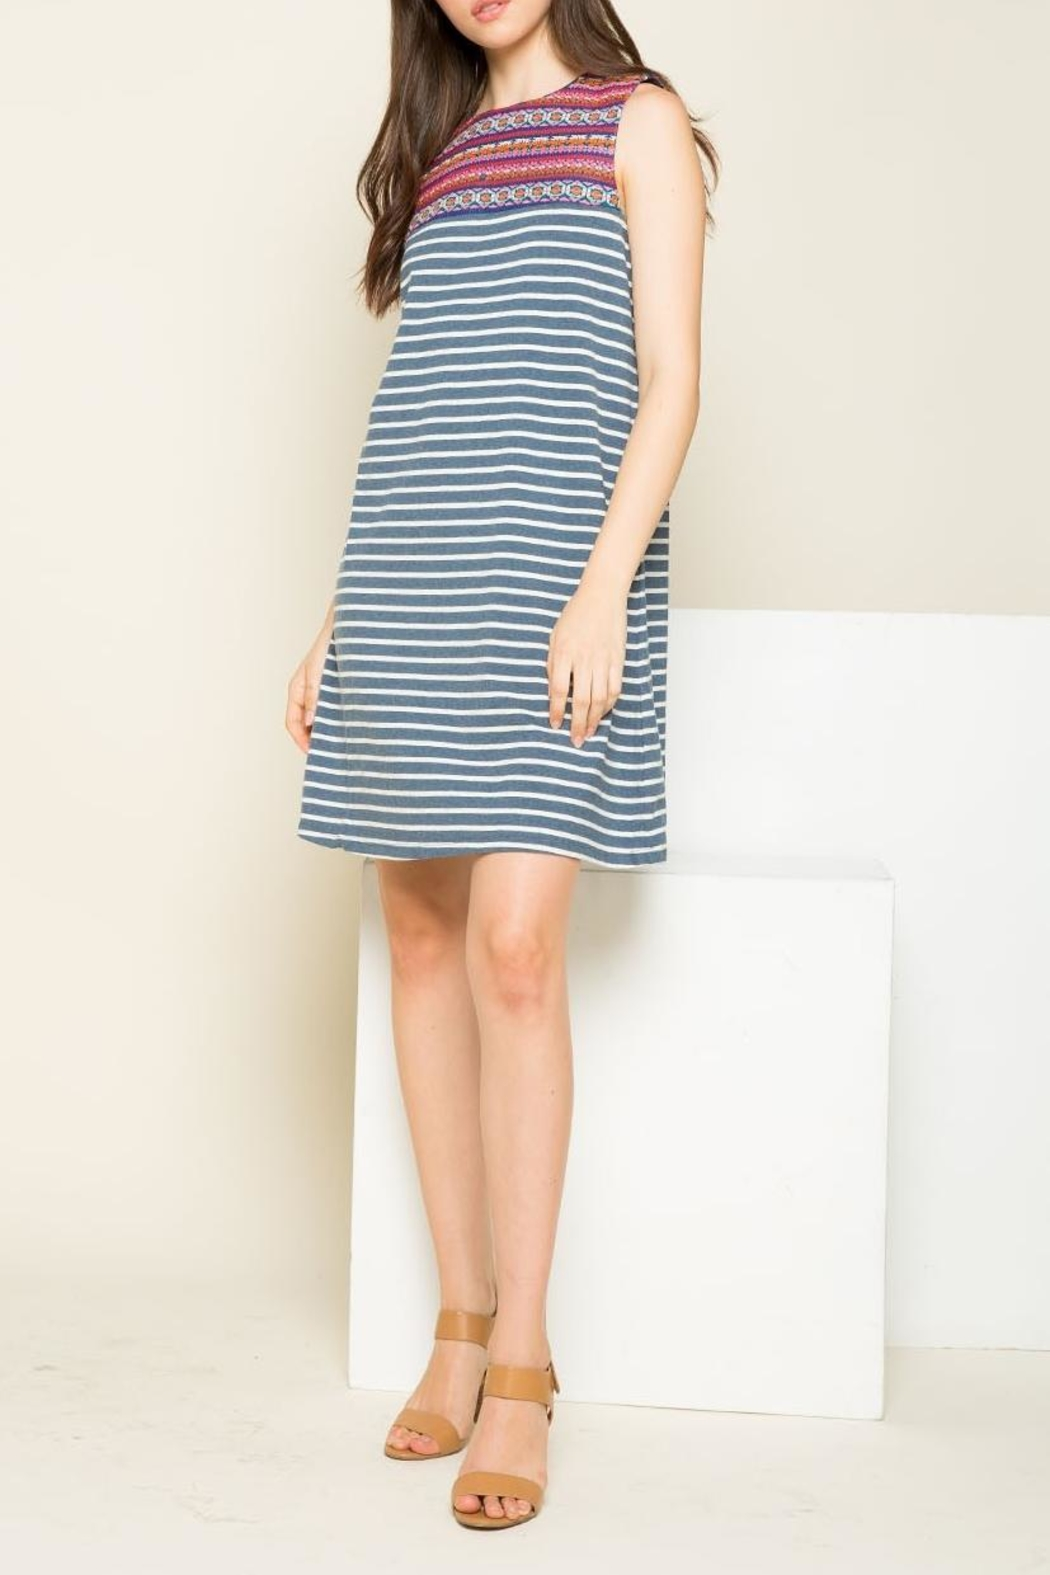 THML Clothing Striped Embroidered Dress - Main Image